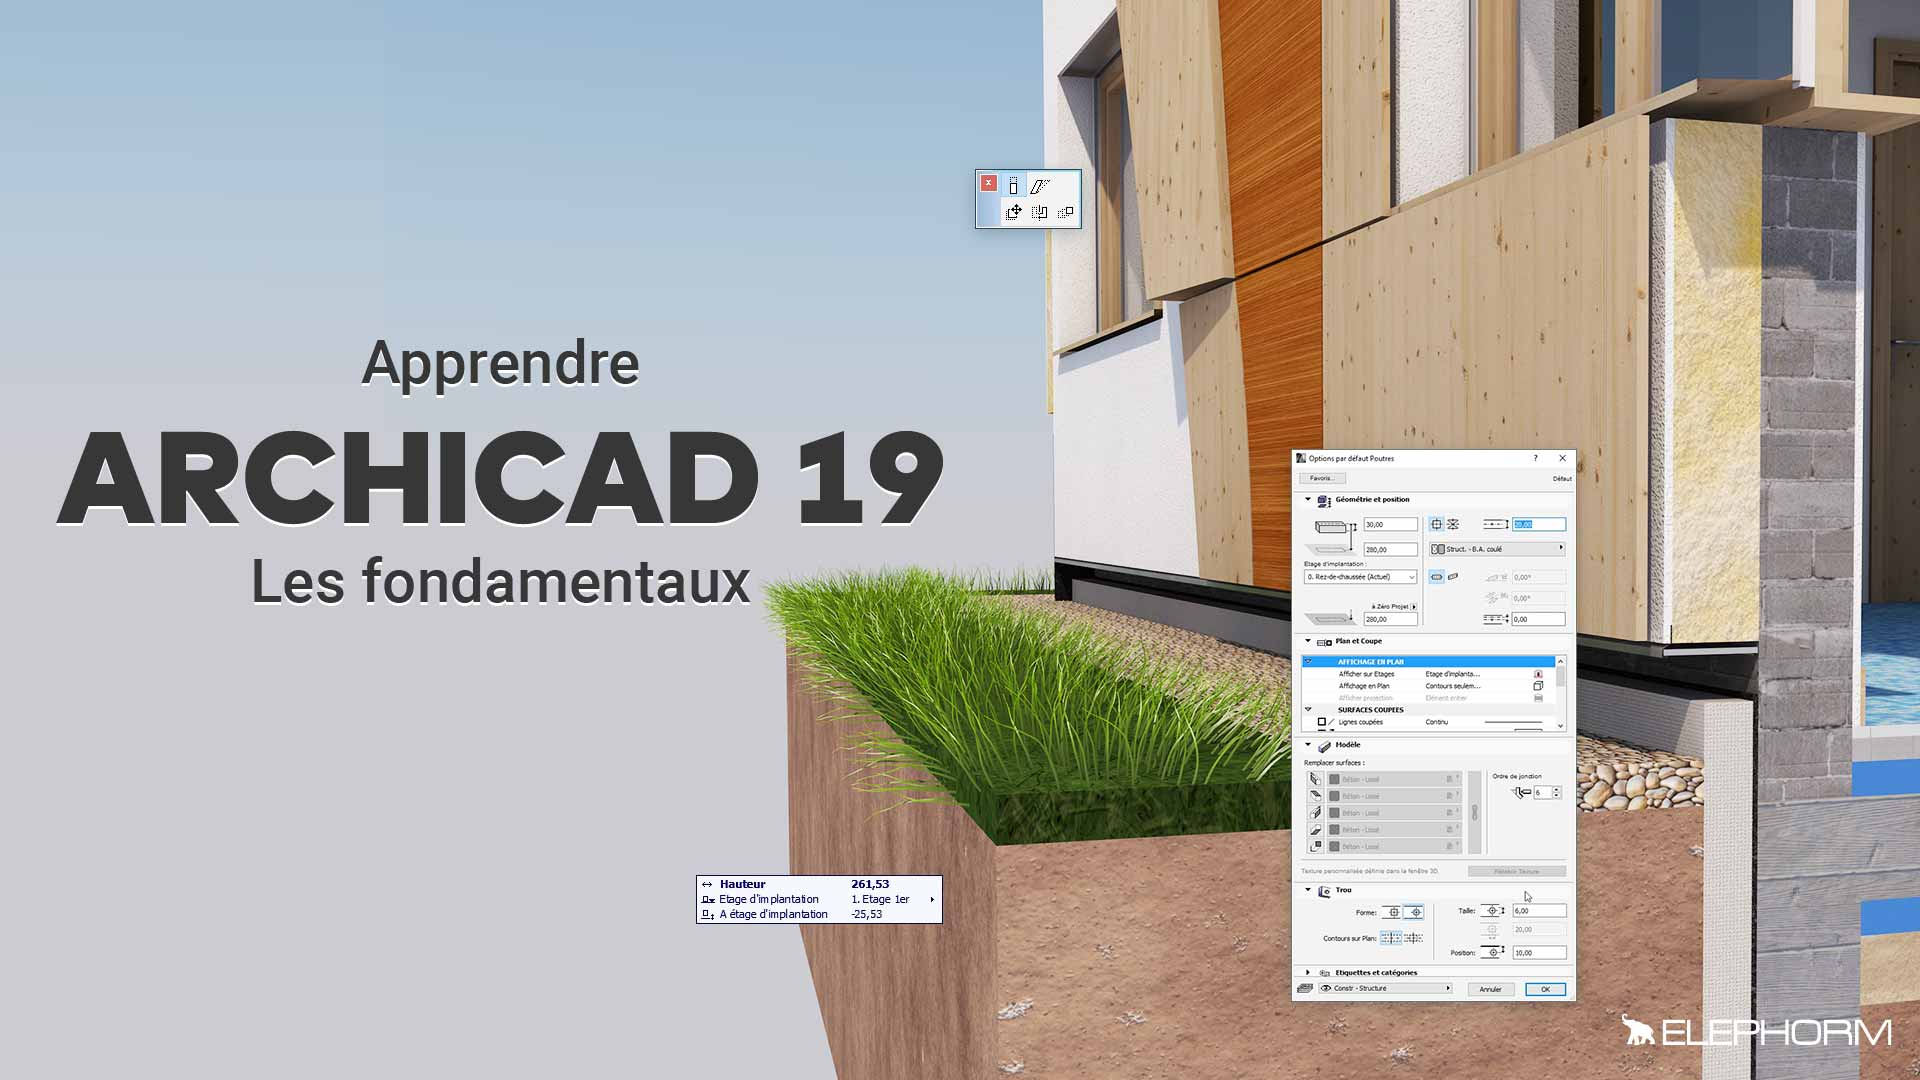 Apprendre Archicad 19